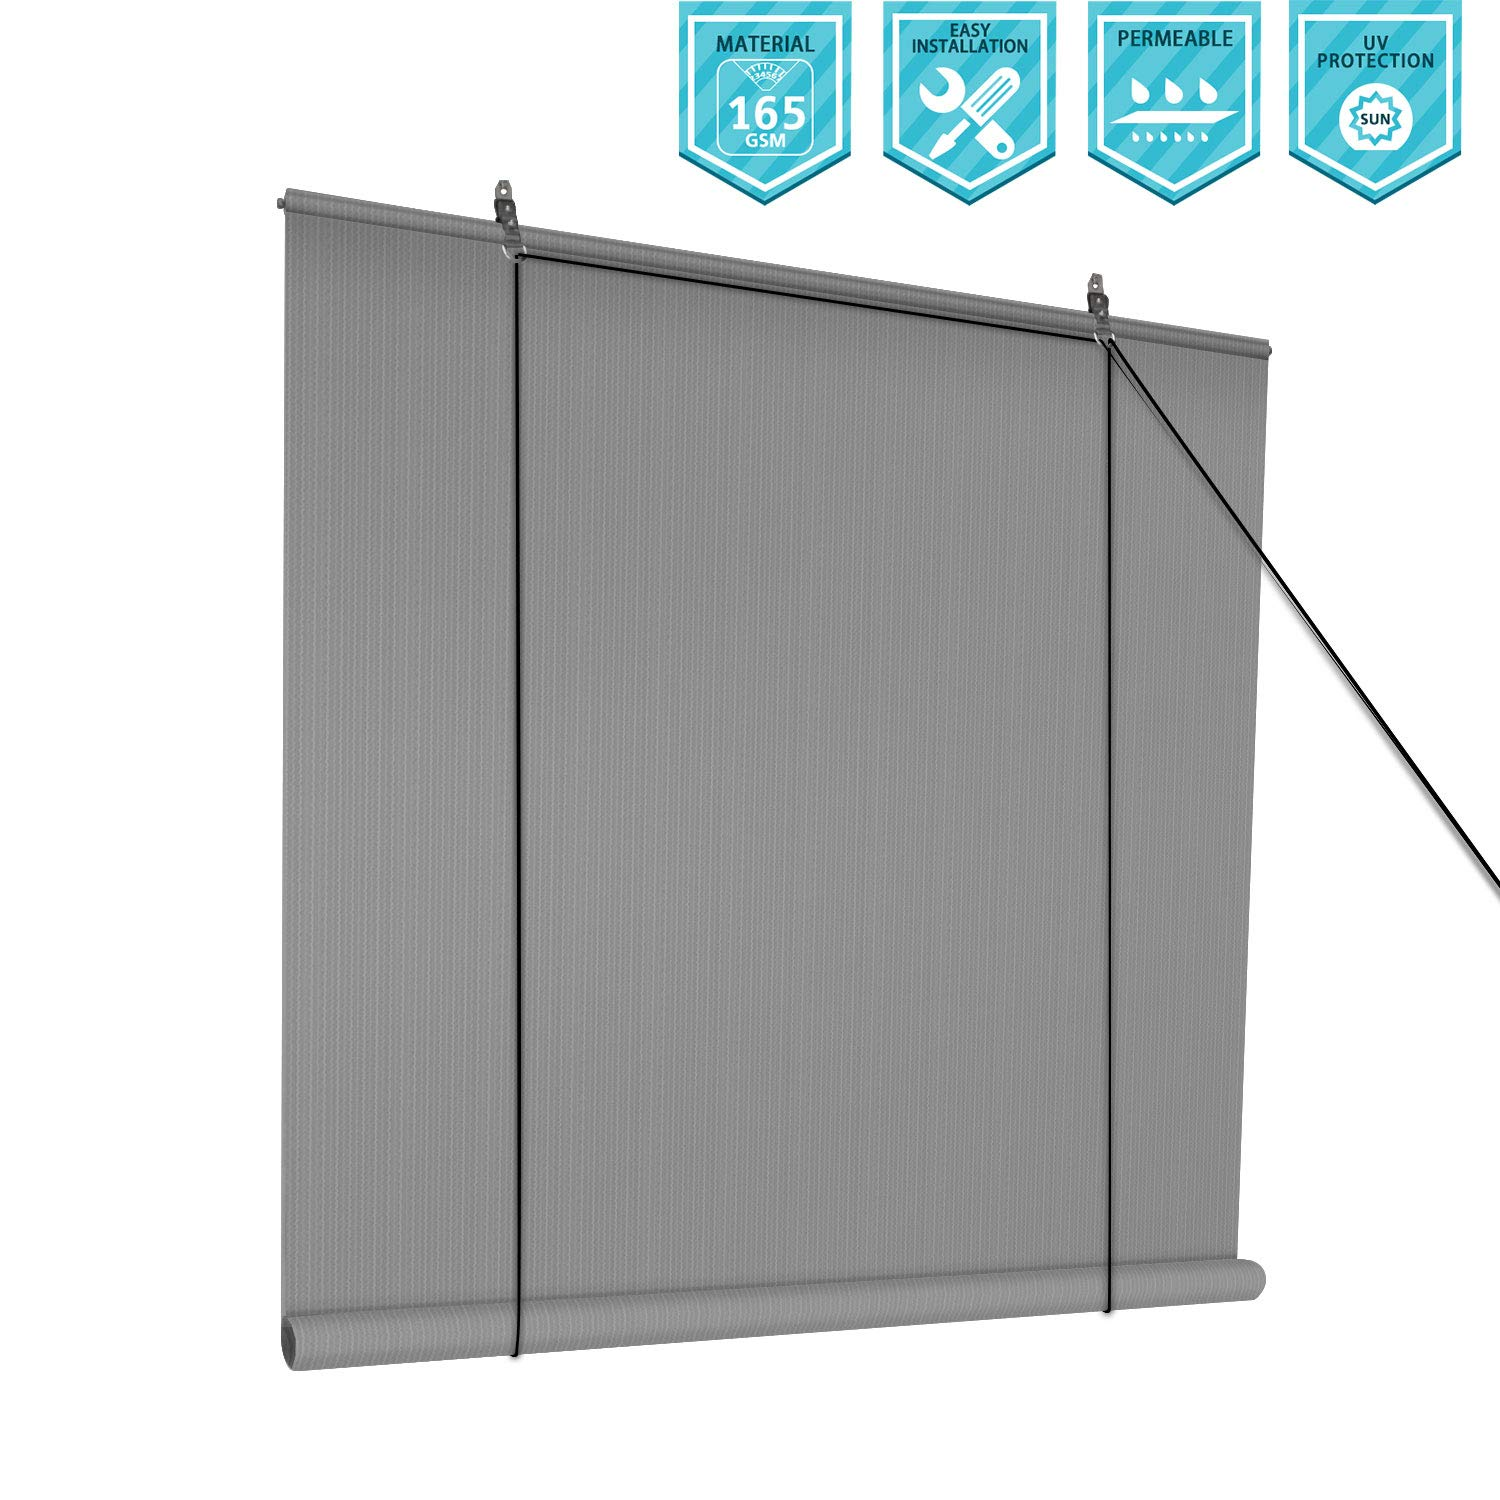 Coarbor Outdoor Roll up Shades Blinds for Porch Patio Shade Exterior Roller Shade Privacy Shade Screen for Deck Pergola Gazebo Grey 8'W x 6'H